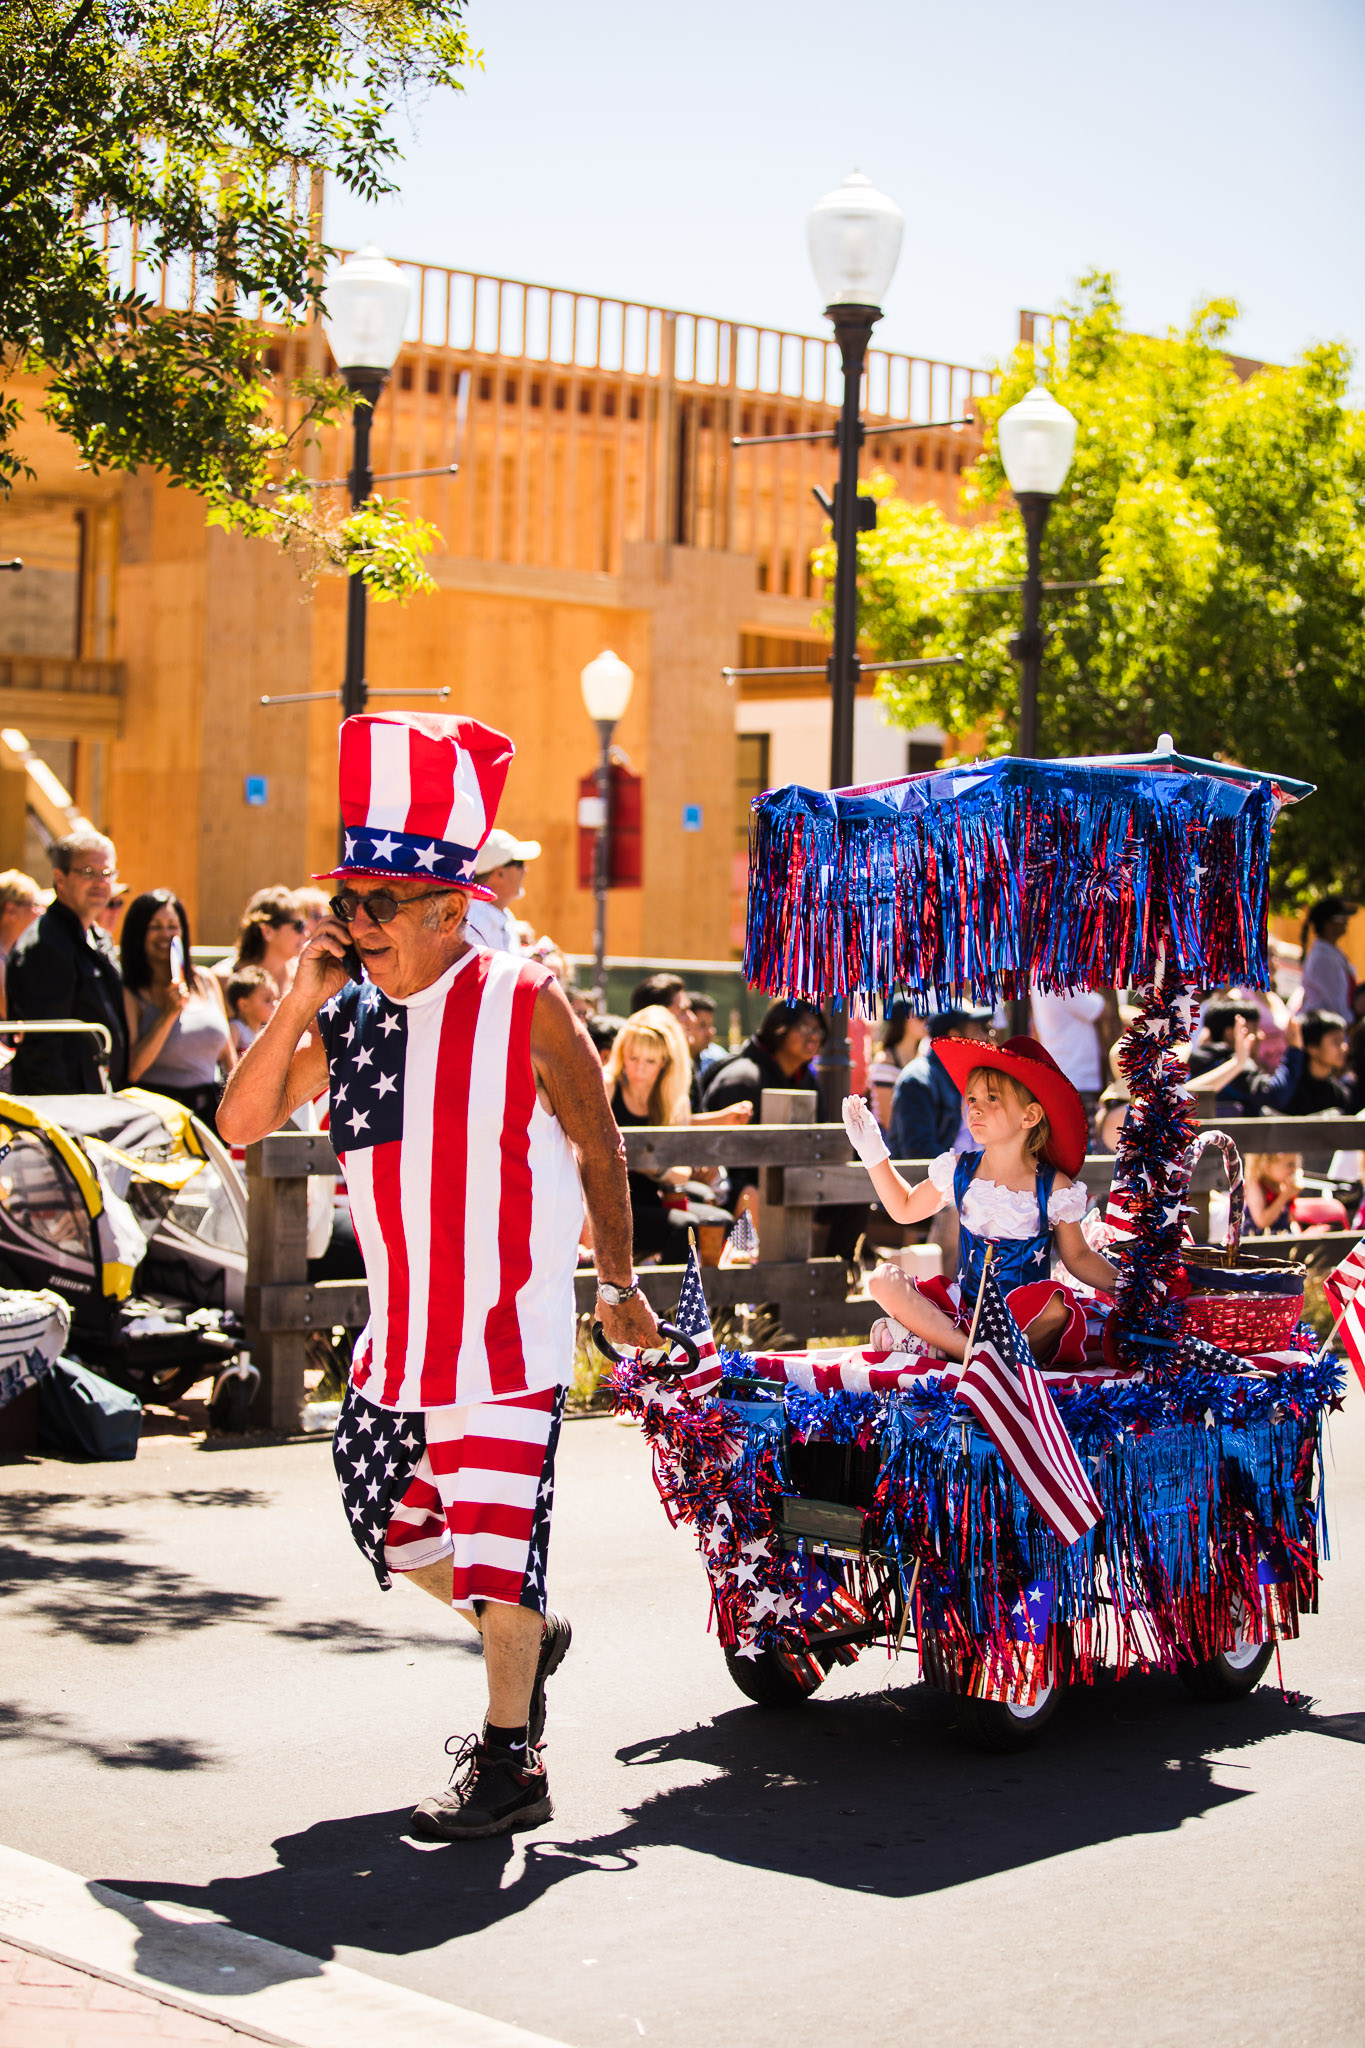 Archer_Inspired_Photography_Morgan_Hill_California_4th_of_july_parade-156.jpg